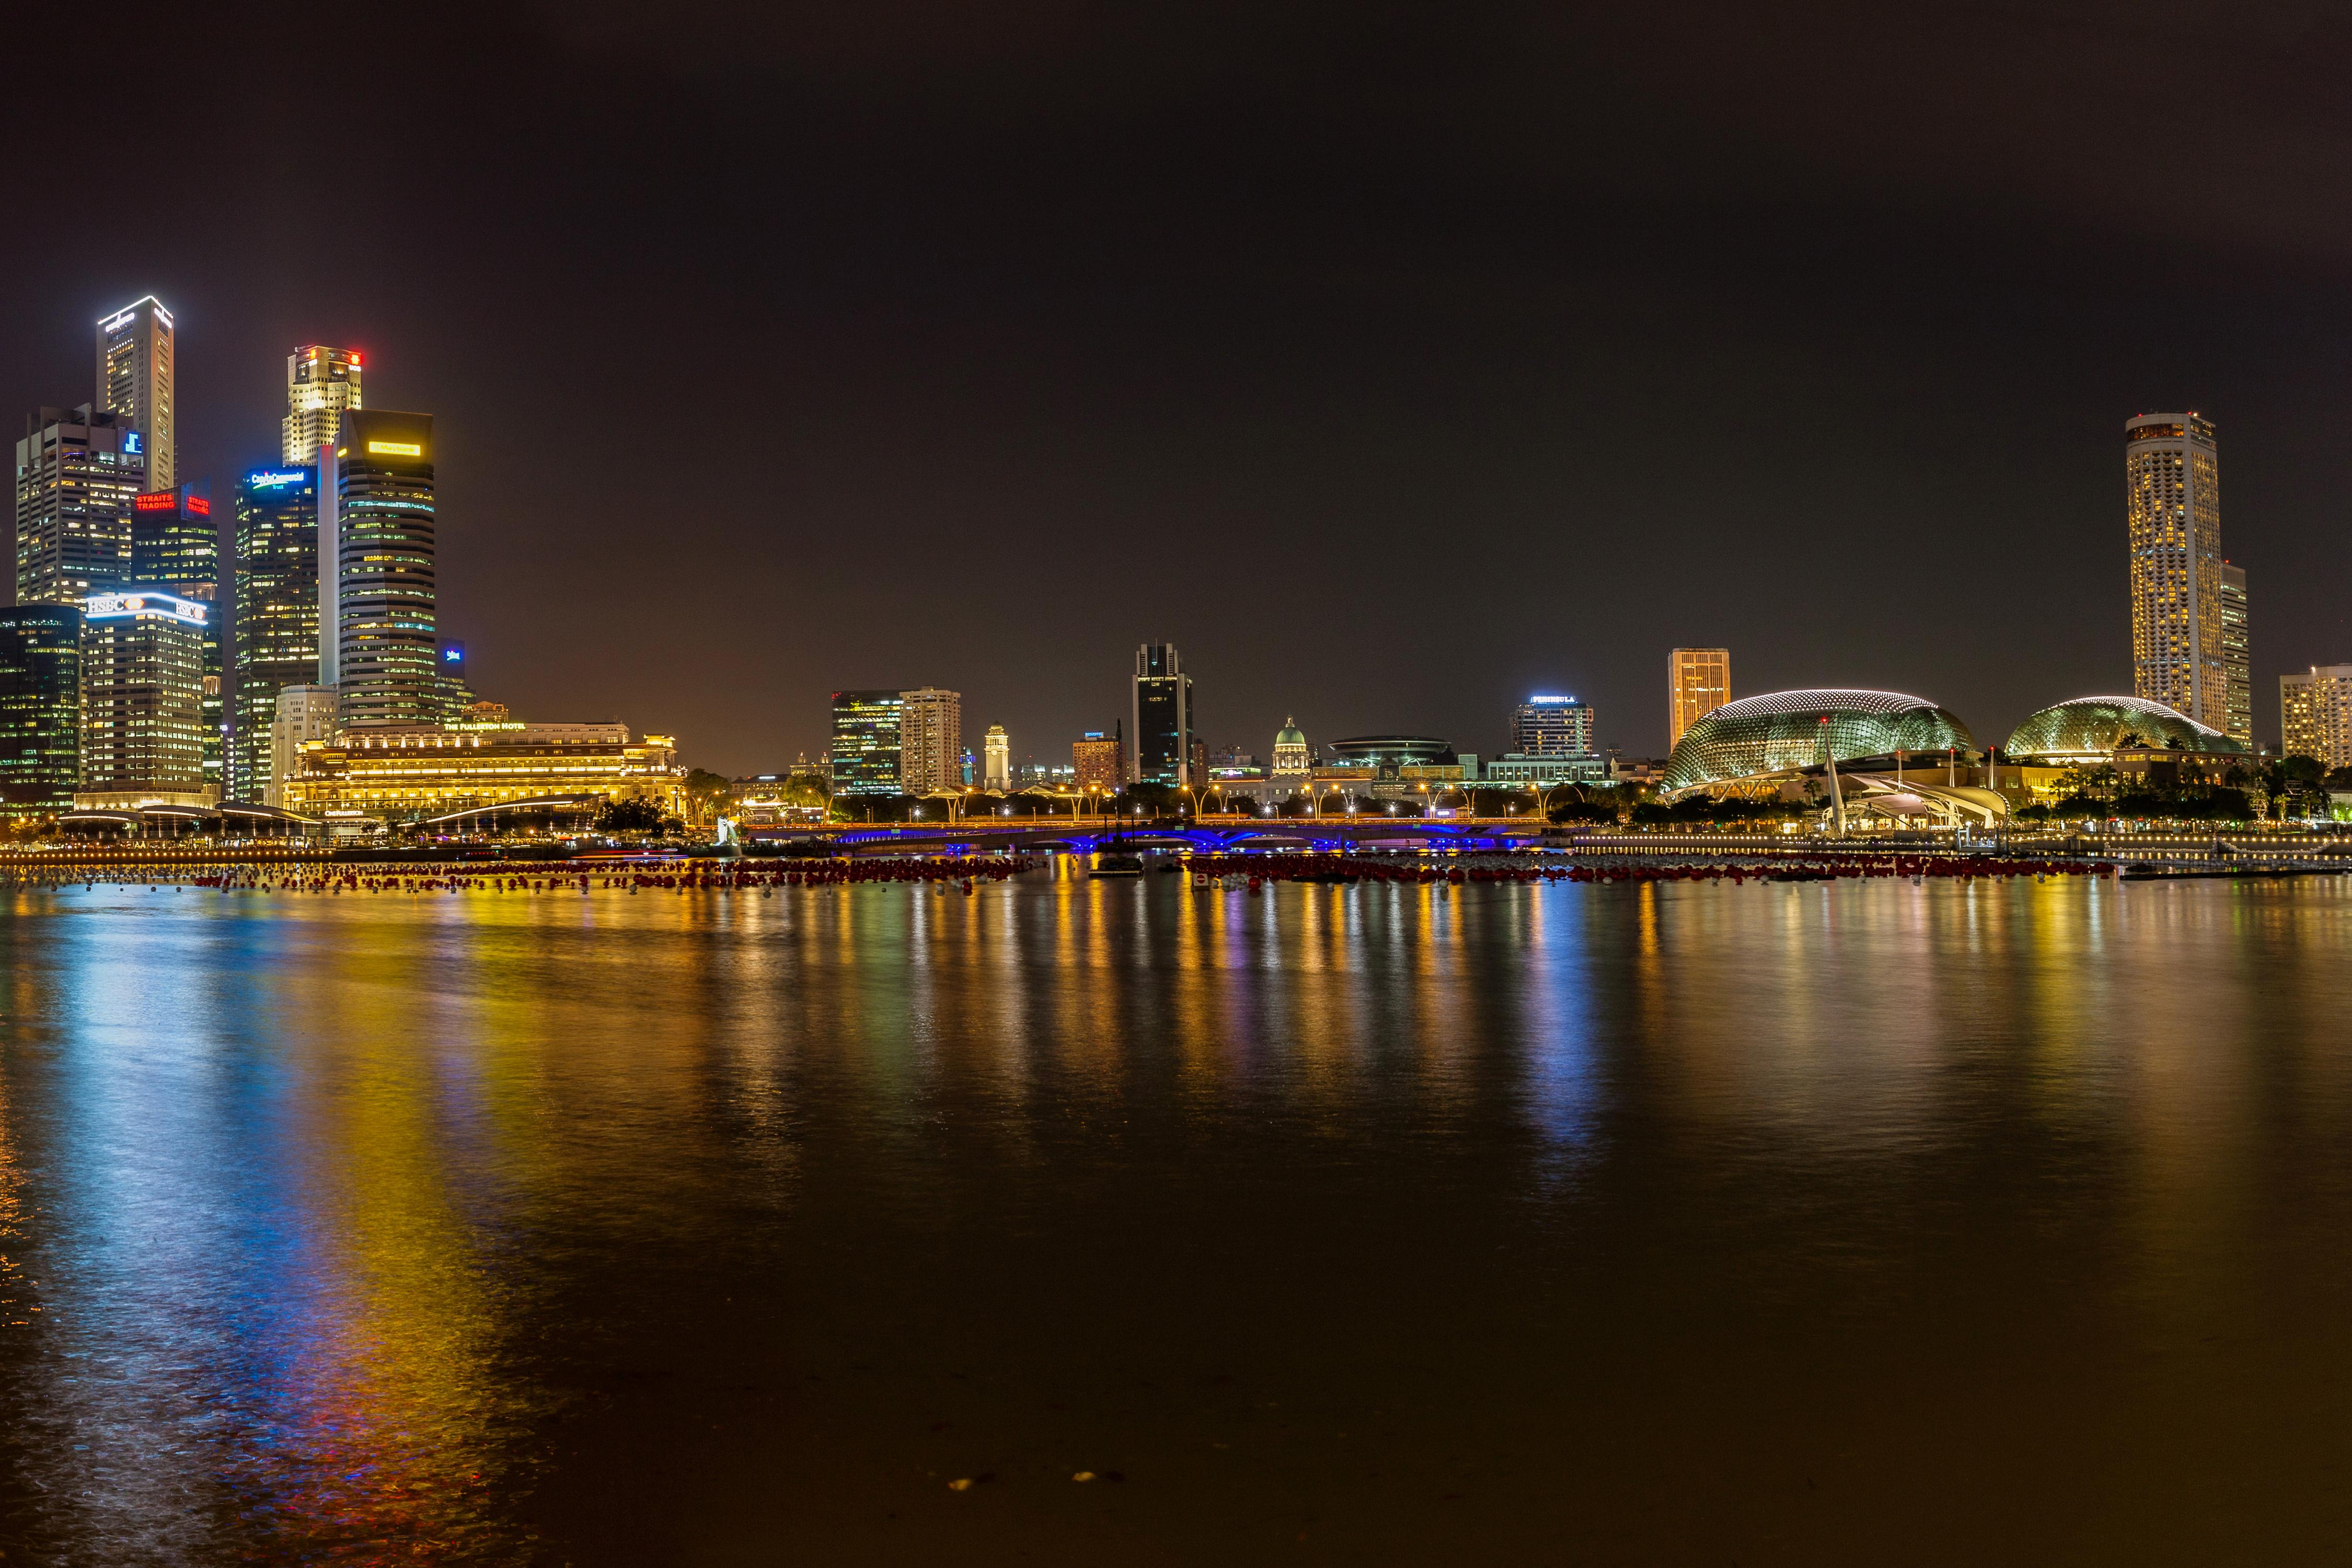 Wallpapers Singapore Rivers night time Cities Houses 4500x3000